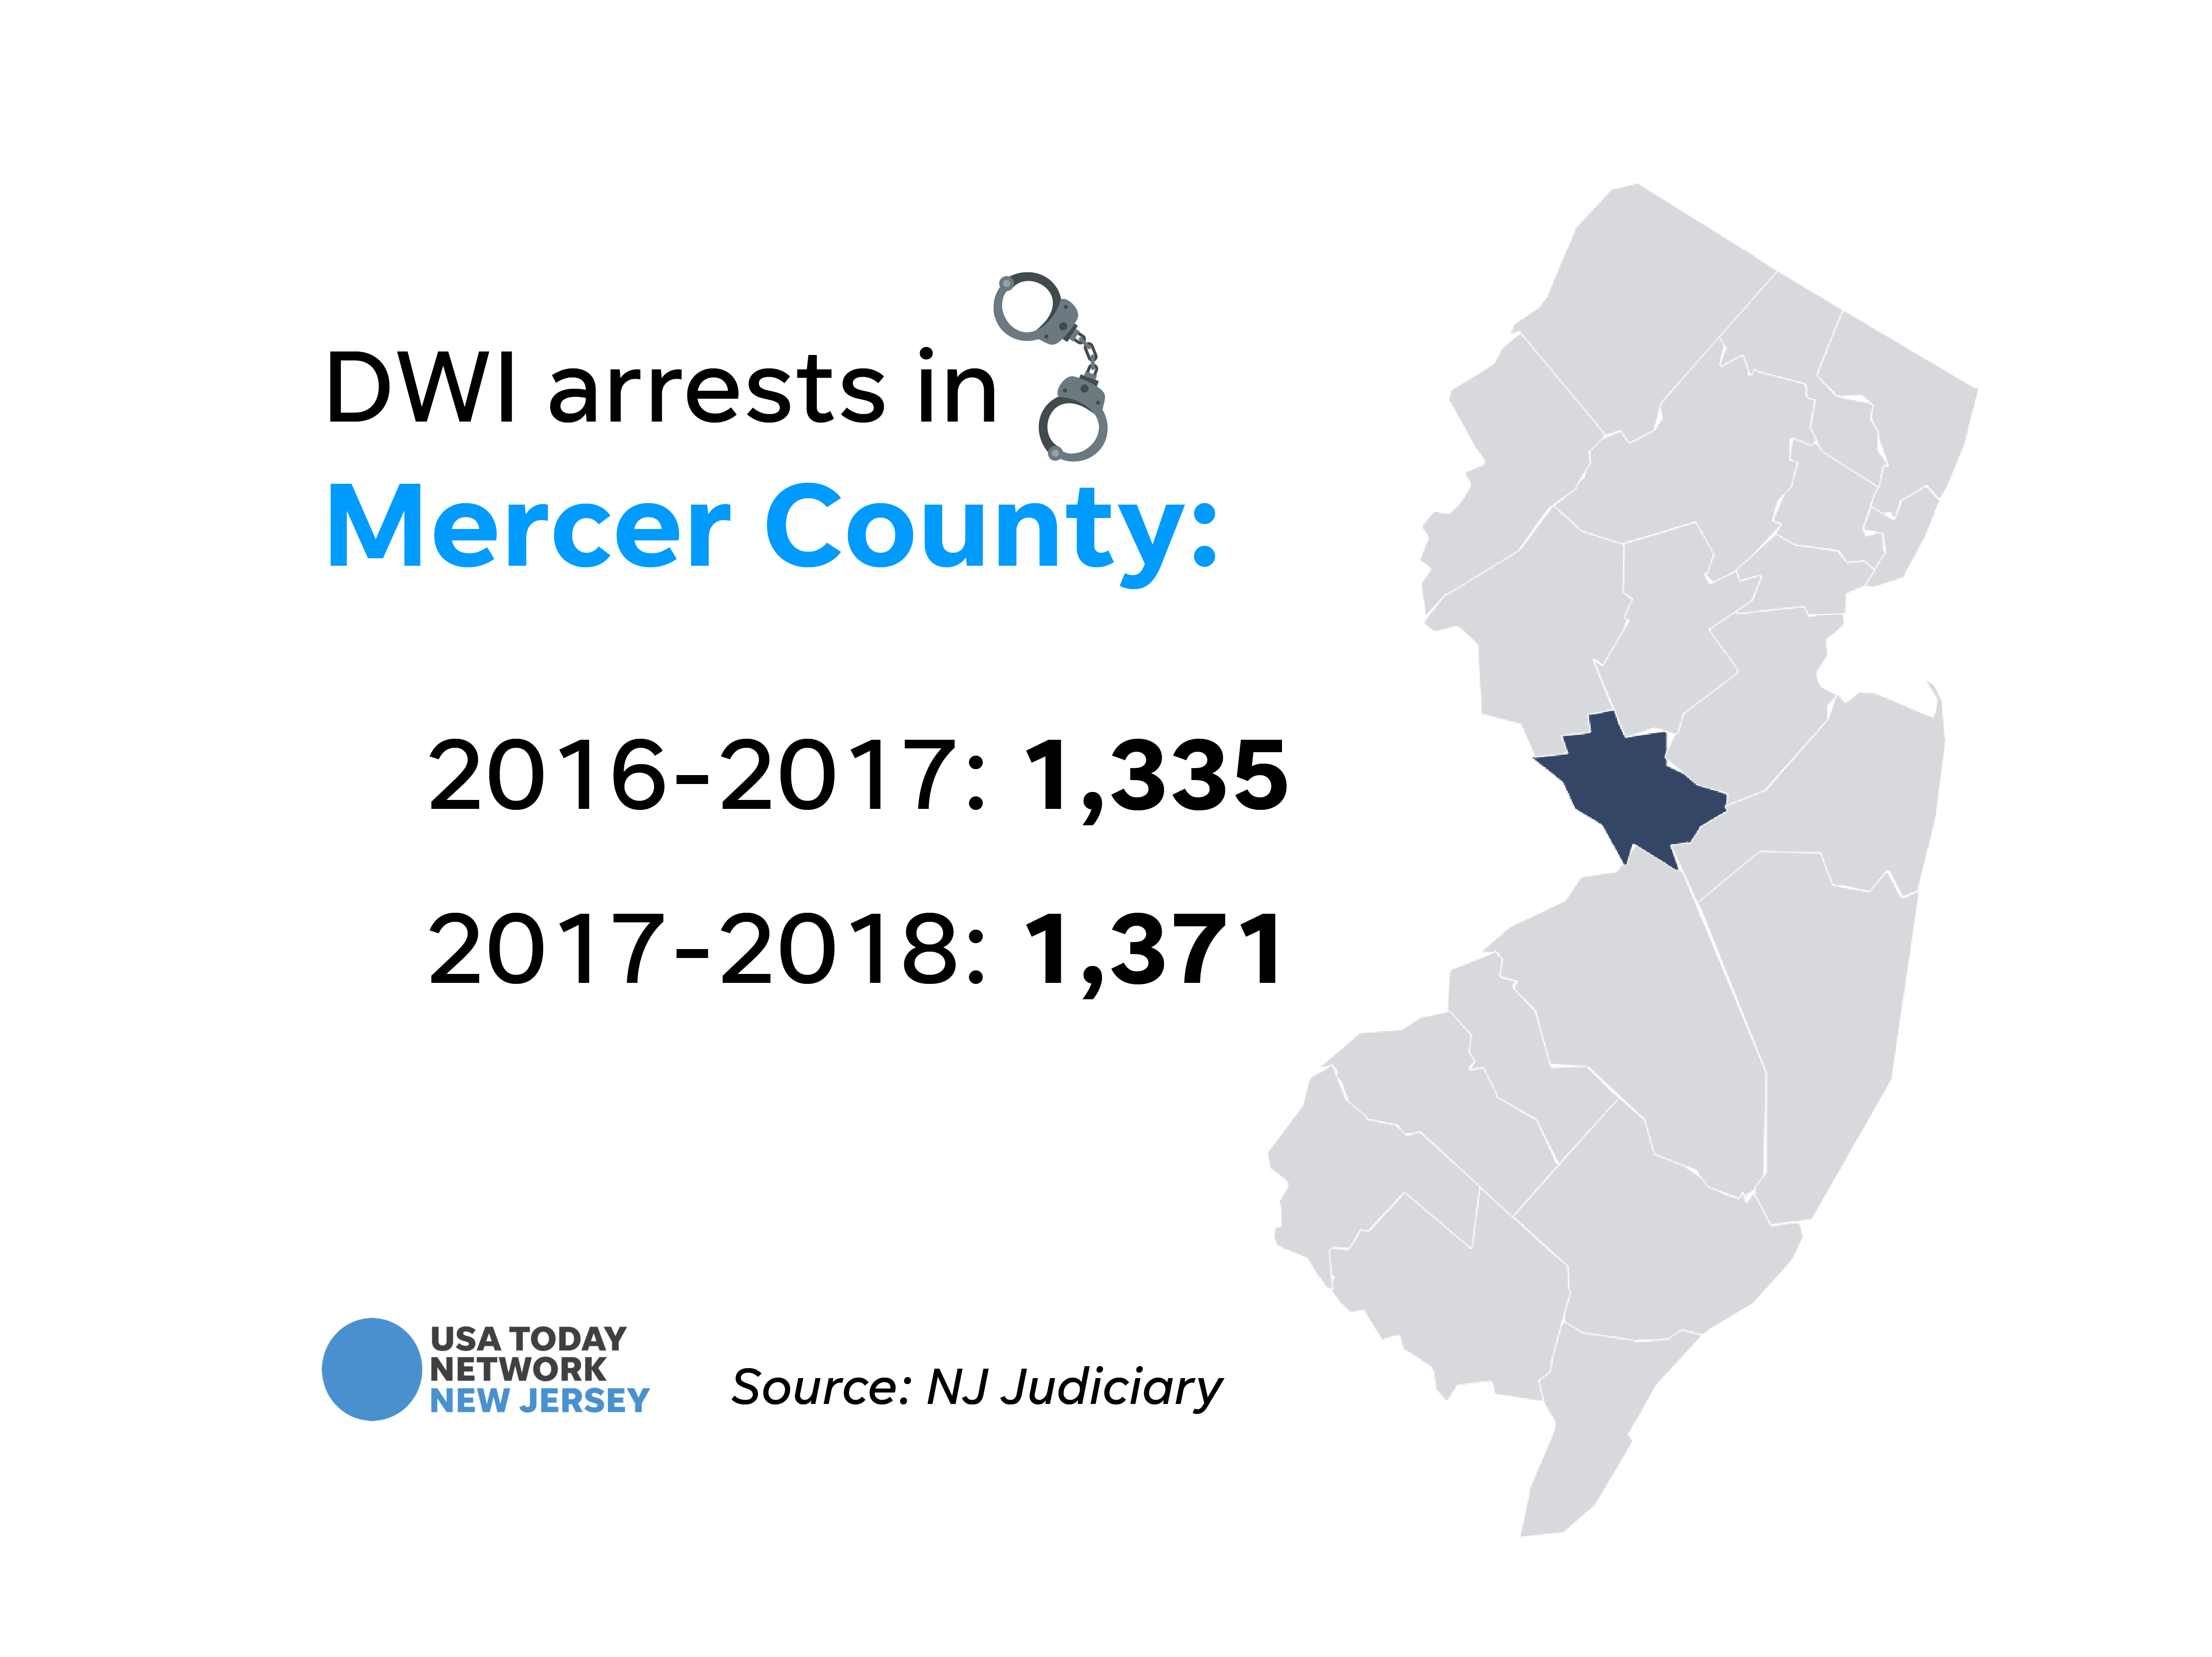 DWI arrests in Mercer County.